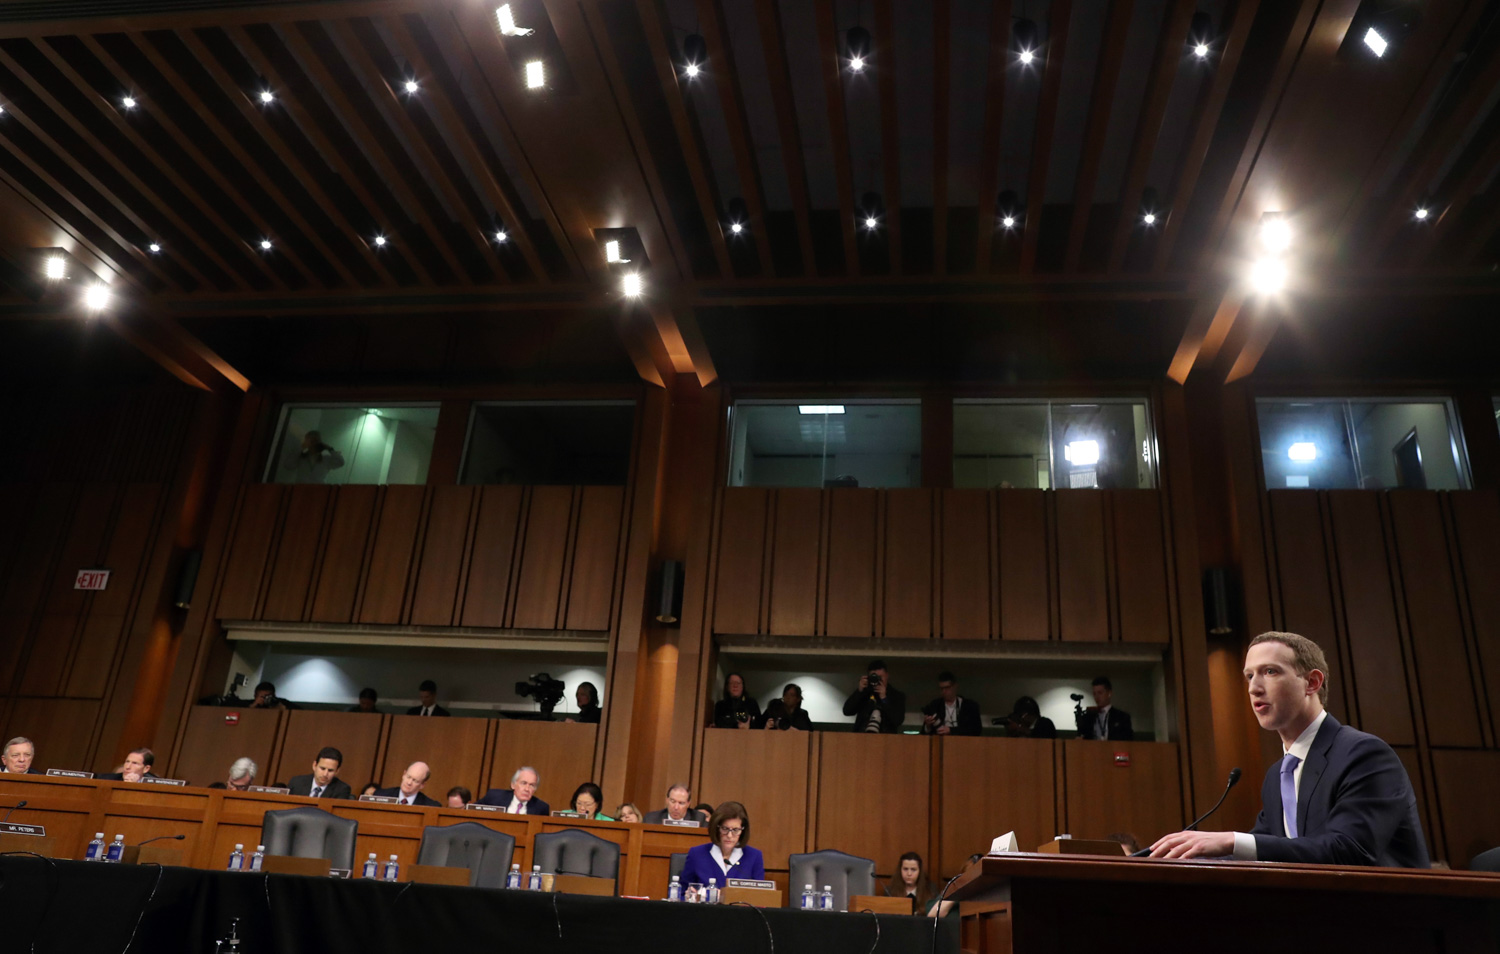 <div class='meta'><div class='origin-logo' data-origin='none'></div><span class='caption-text' data-credit='Alex Brandon/AP Photo'>Facebook CEO Mark Zuckerberg testifies before a joint hearing of the Commerce and Judiciary Committees on Capitol Hill in Washington.</span></div>